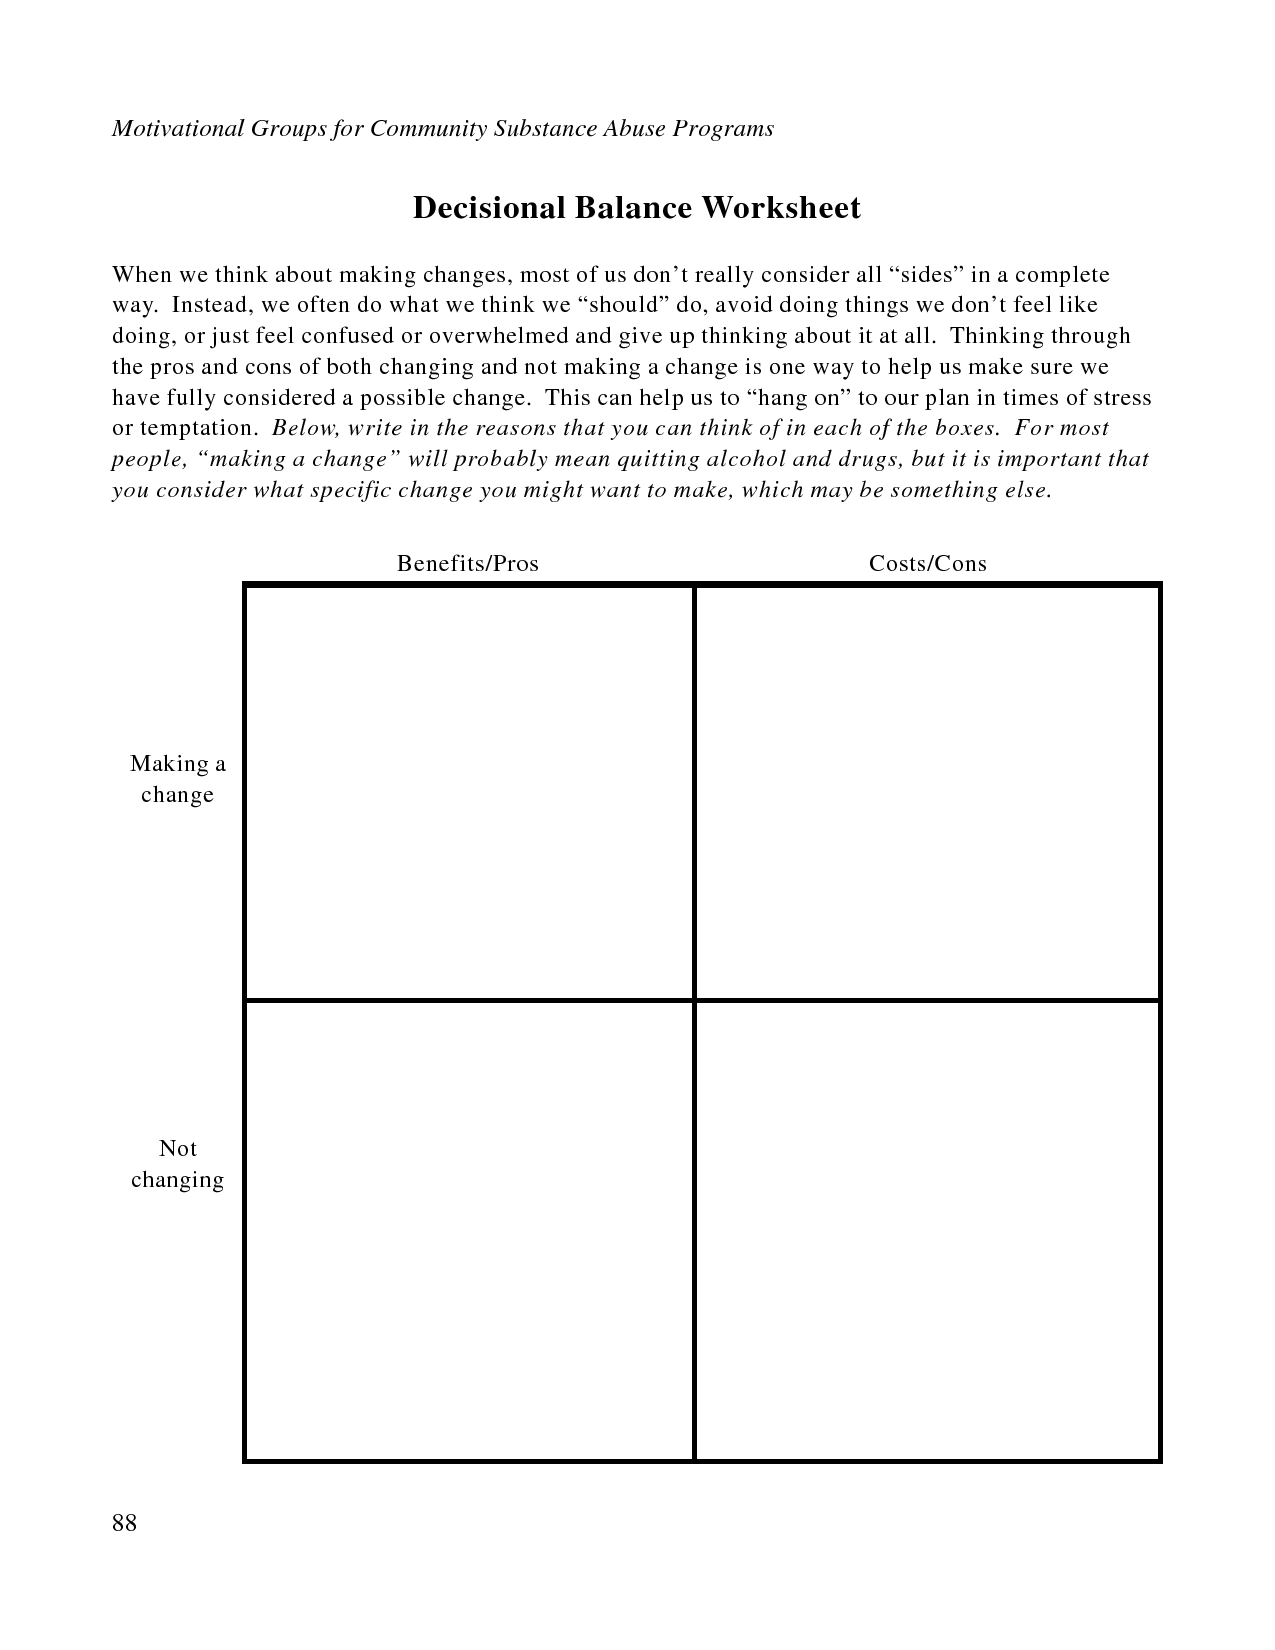 Free Printable Dbt Worksheets Decisional Balance Worksheet